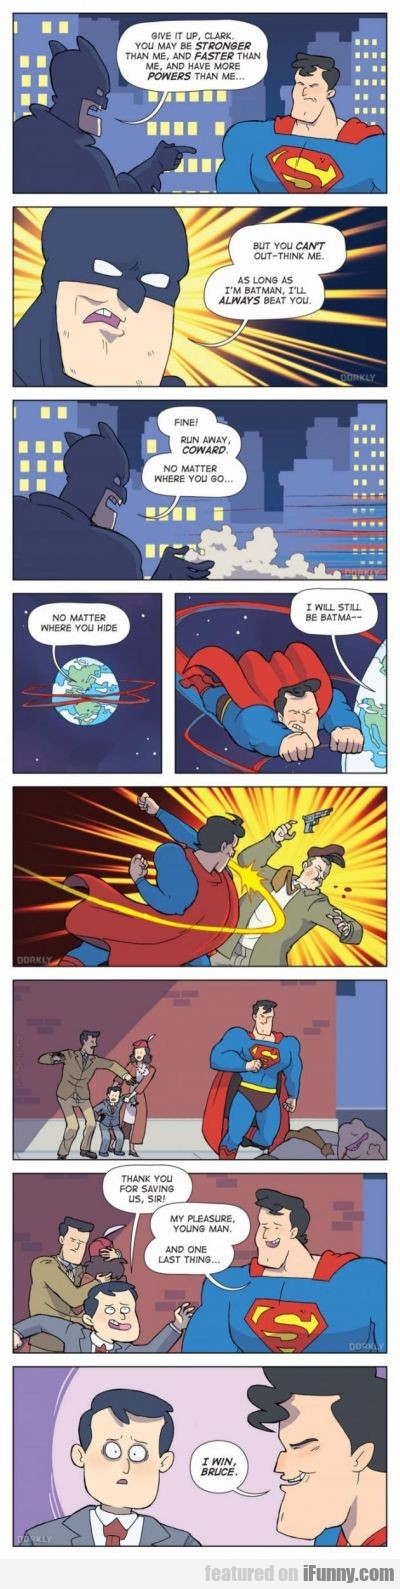 give it up clark, you may be